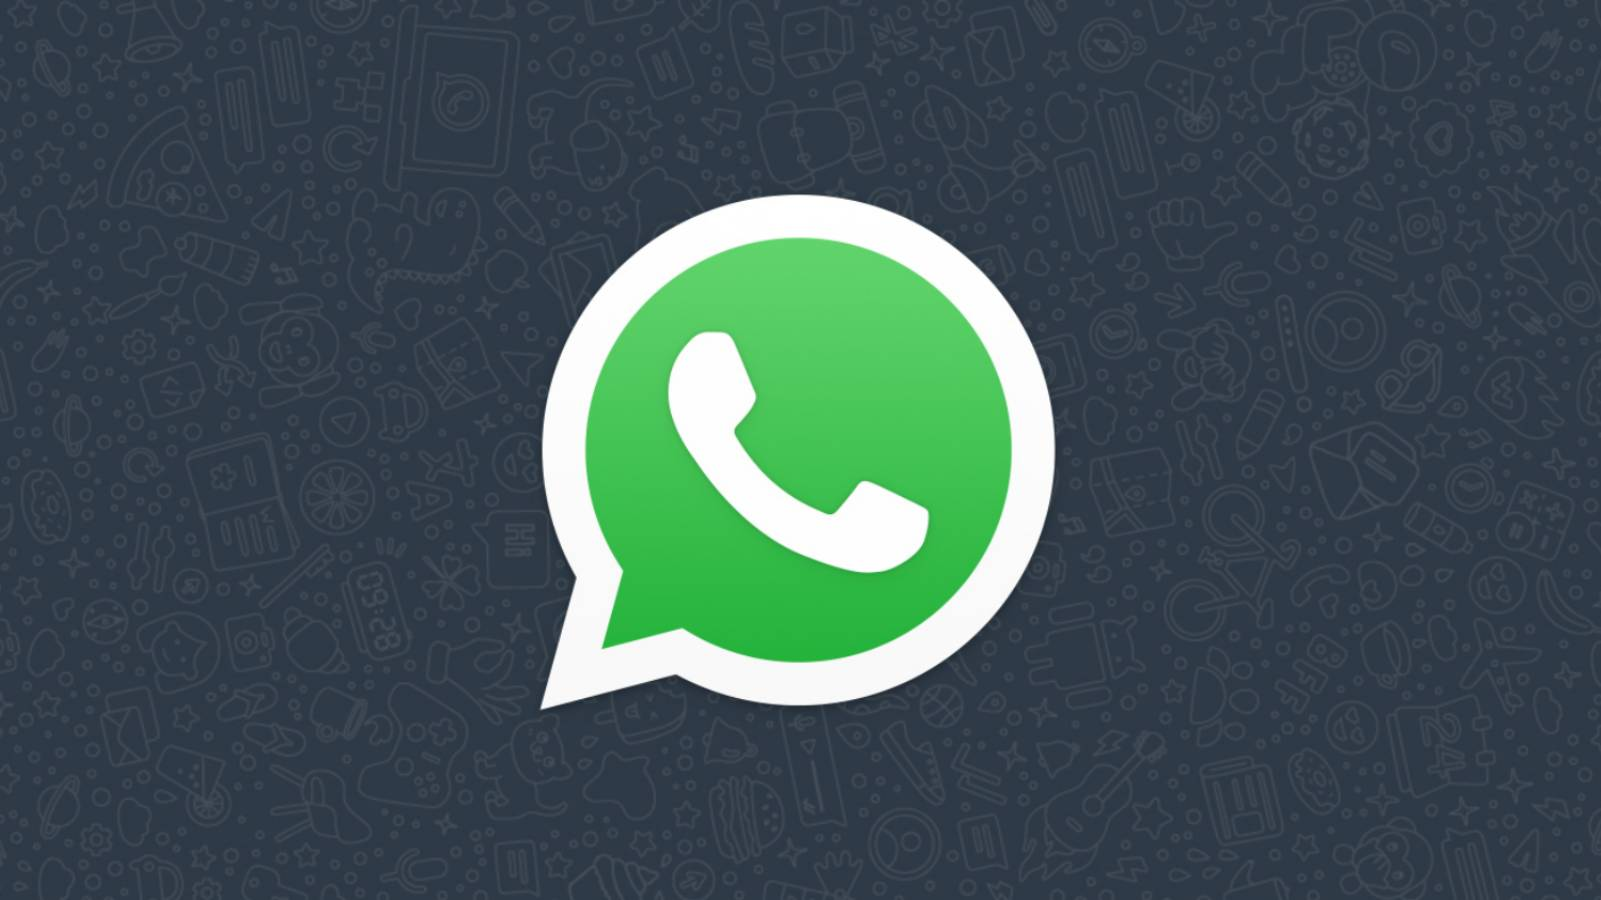 WhatsApp intermediere